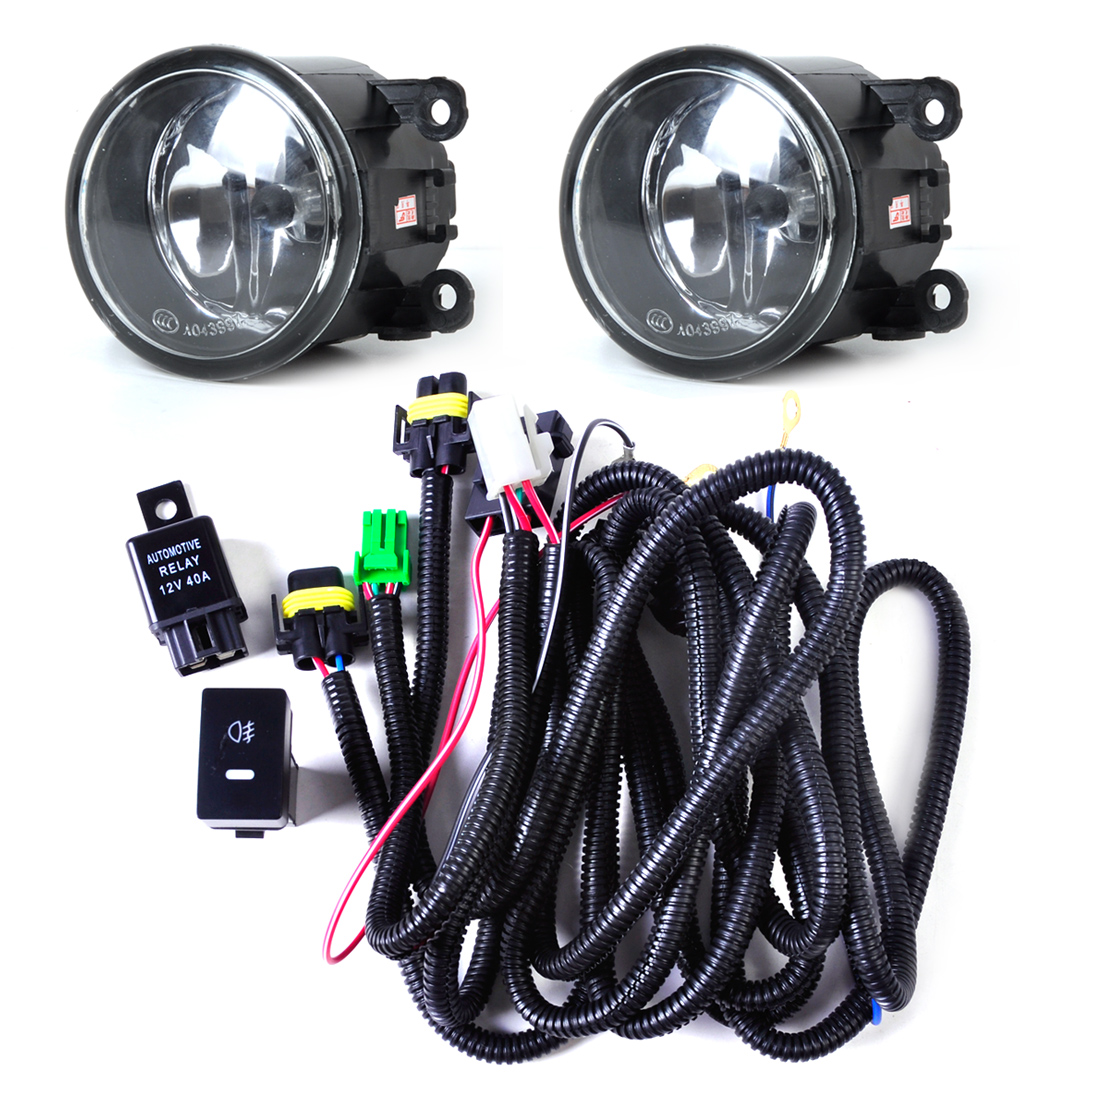 Buy Dwcx Black Wiring Harness Sockets Switch 2 A Gas Lamp Fog Lights H11 12v 55w Kit For Ford Mustang Lincoln Navigator Subaru Outback From